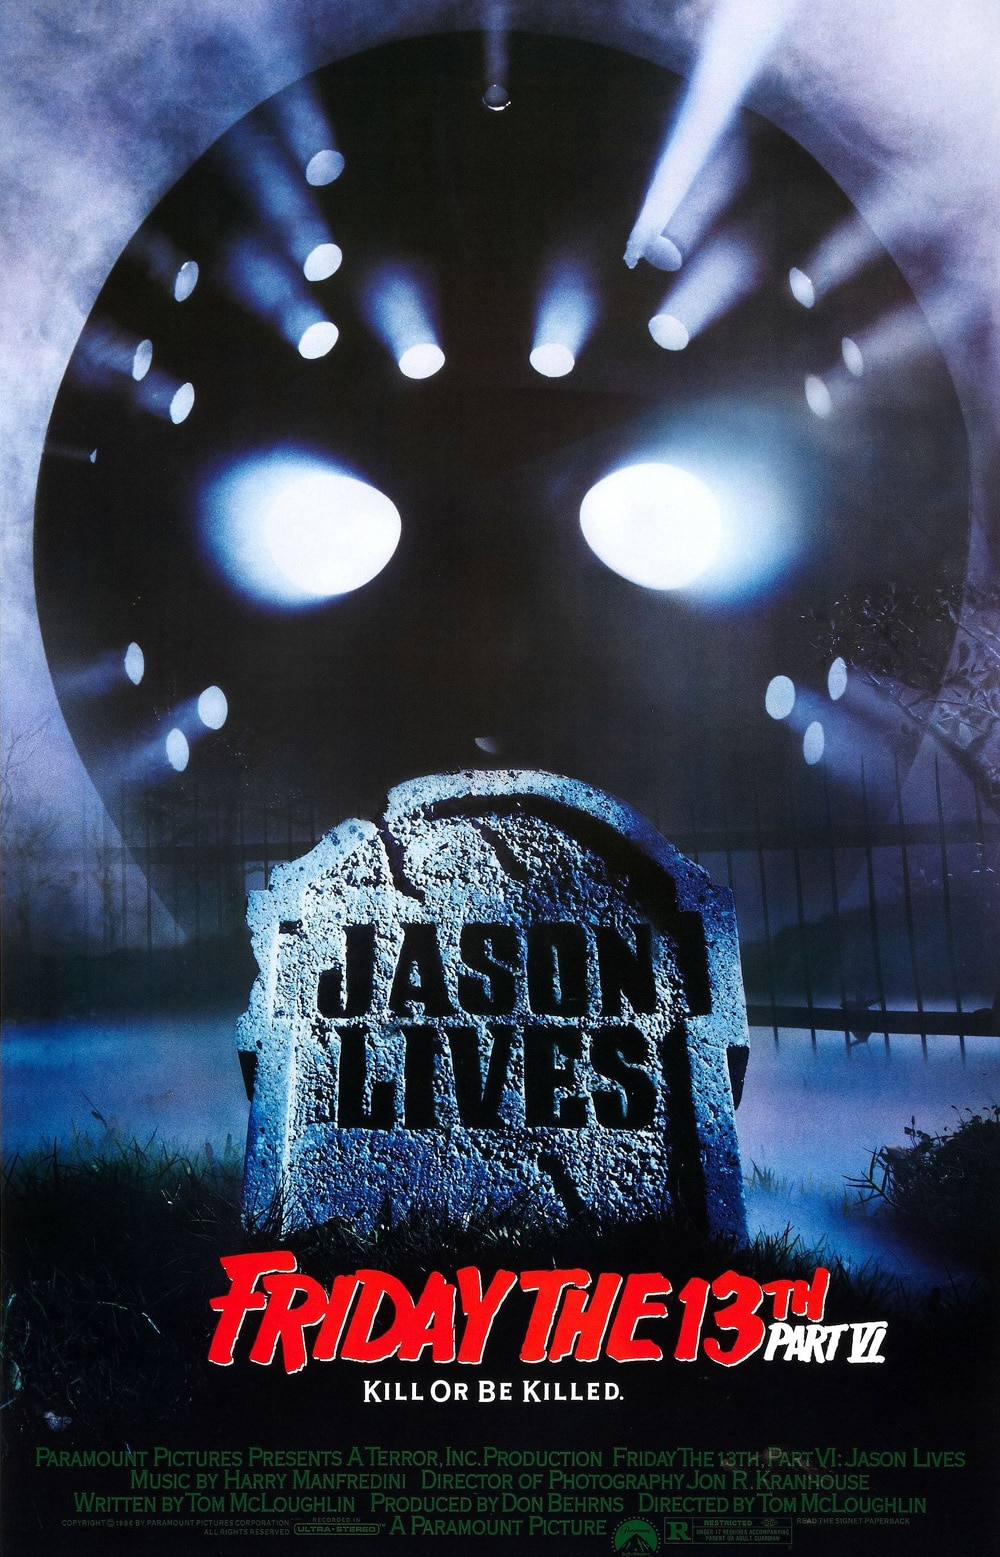 jason lives - Friday the 13th Part VI: 30 Years On and Why Jason Still Lives